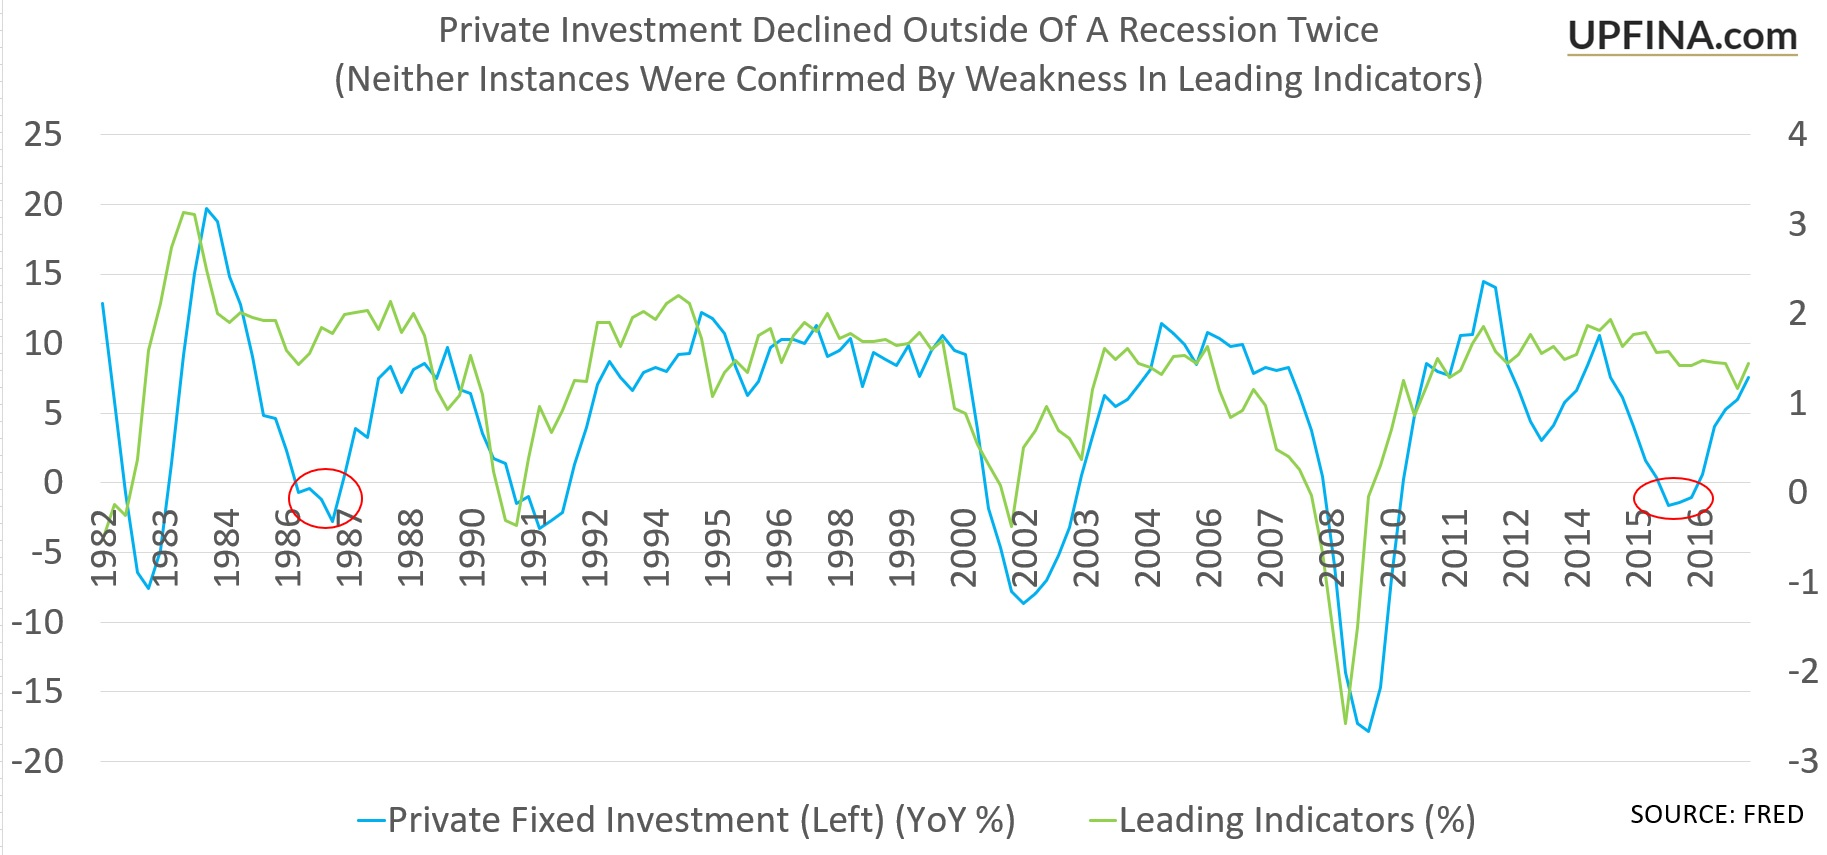 Rare Instances Where Private Investment Faltered Outside Of A Recession